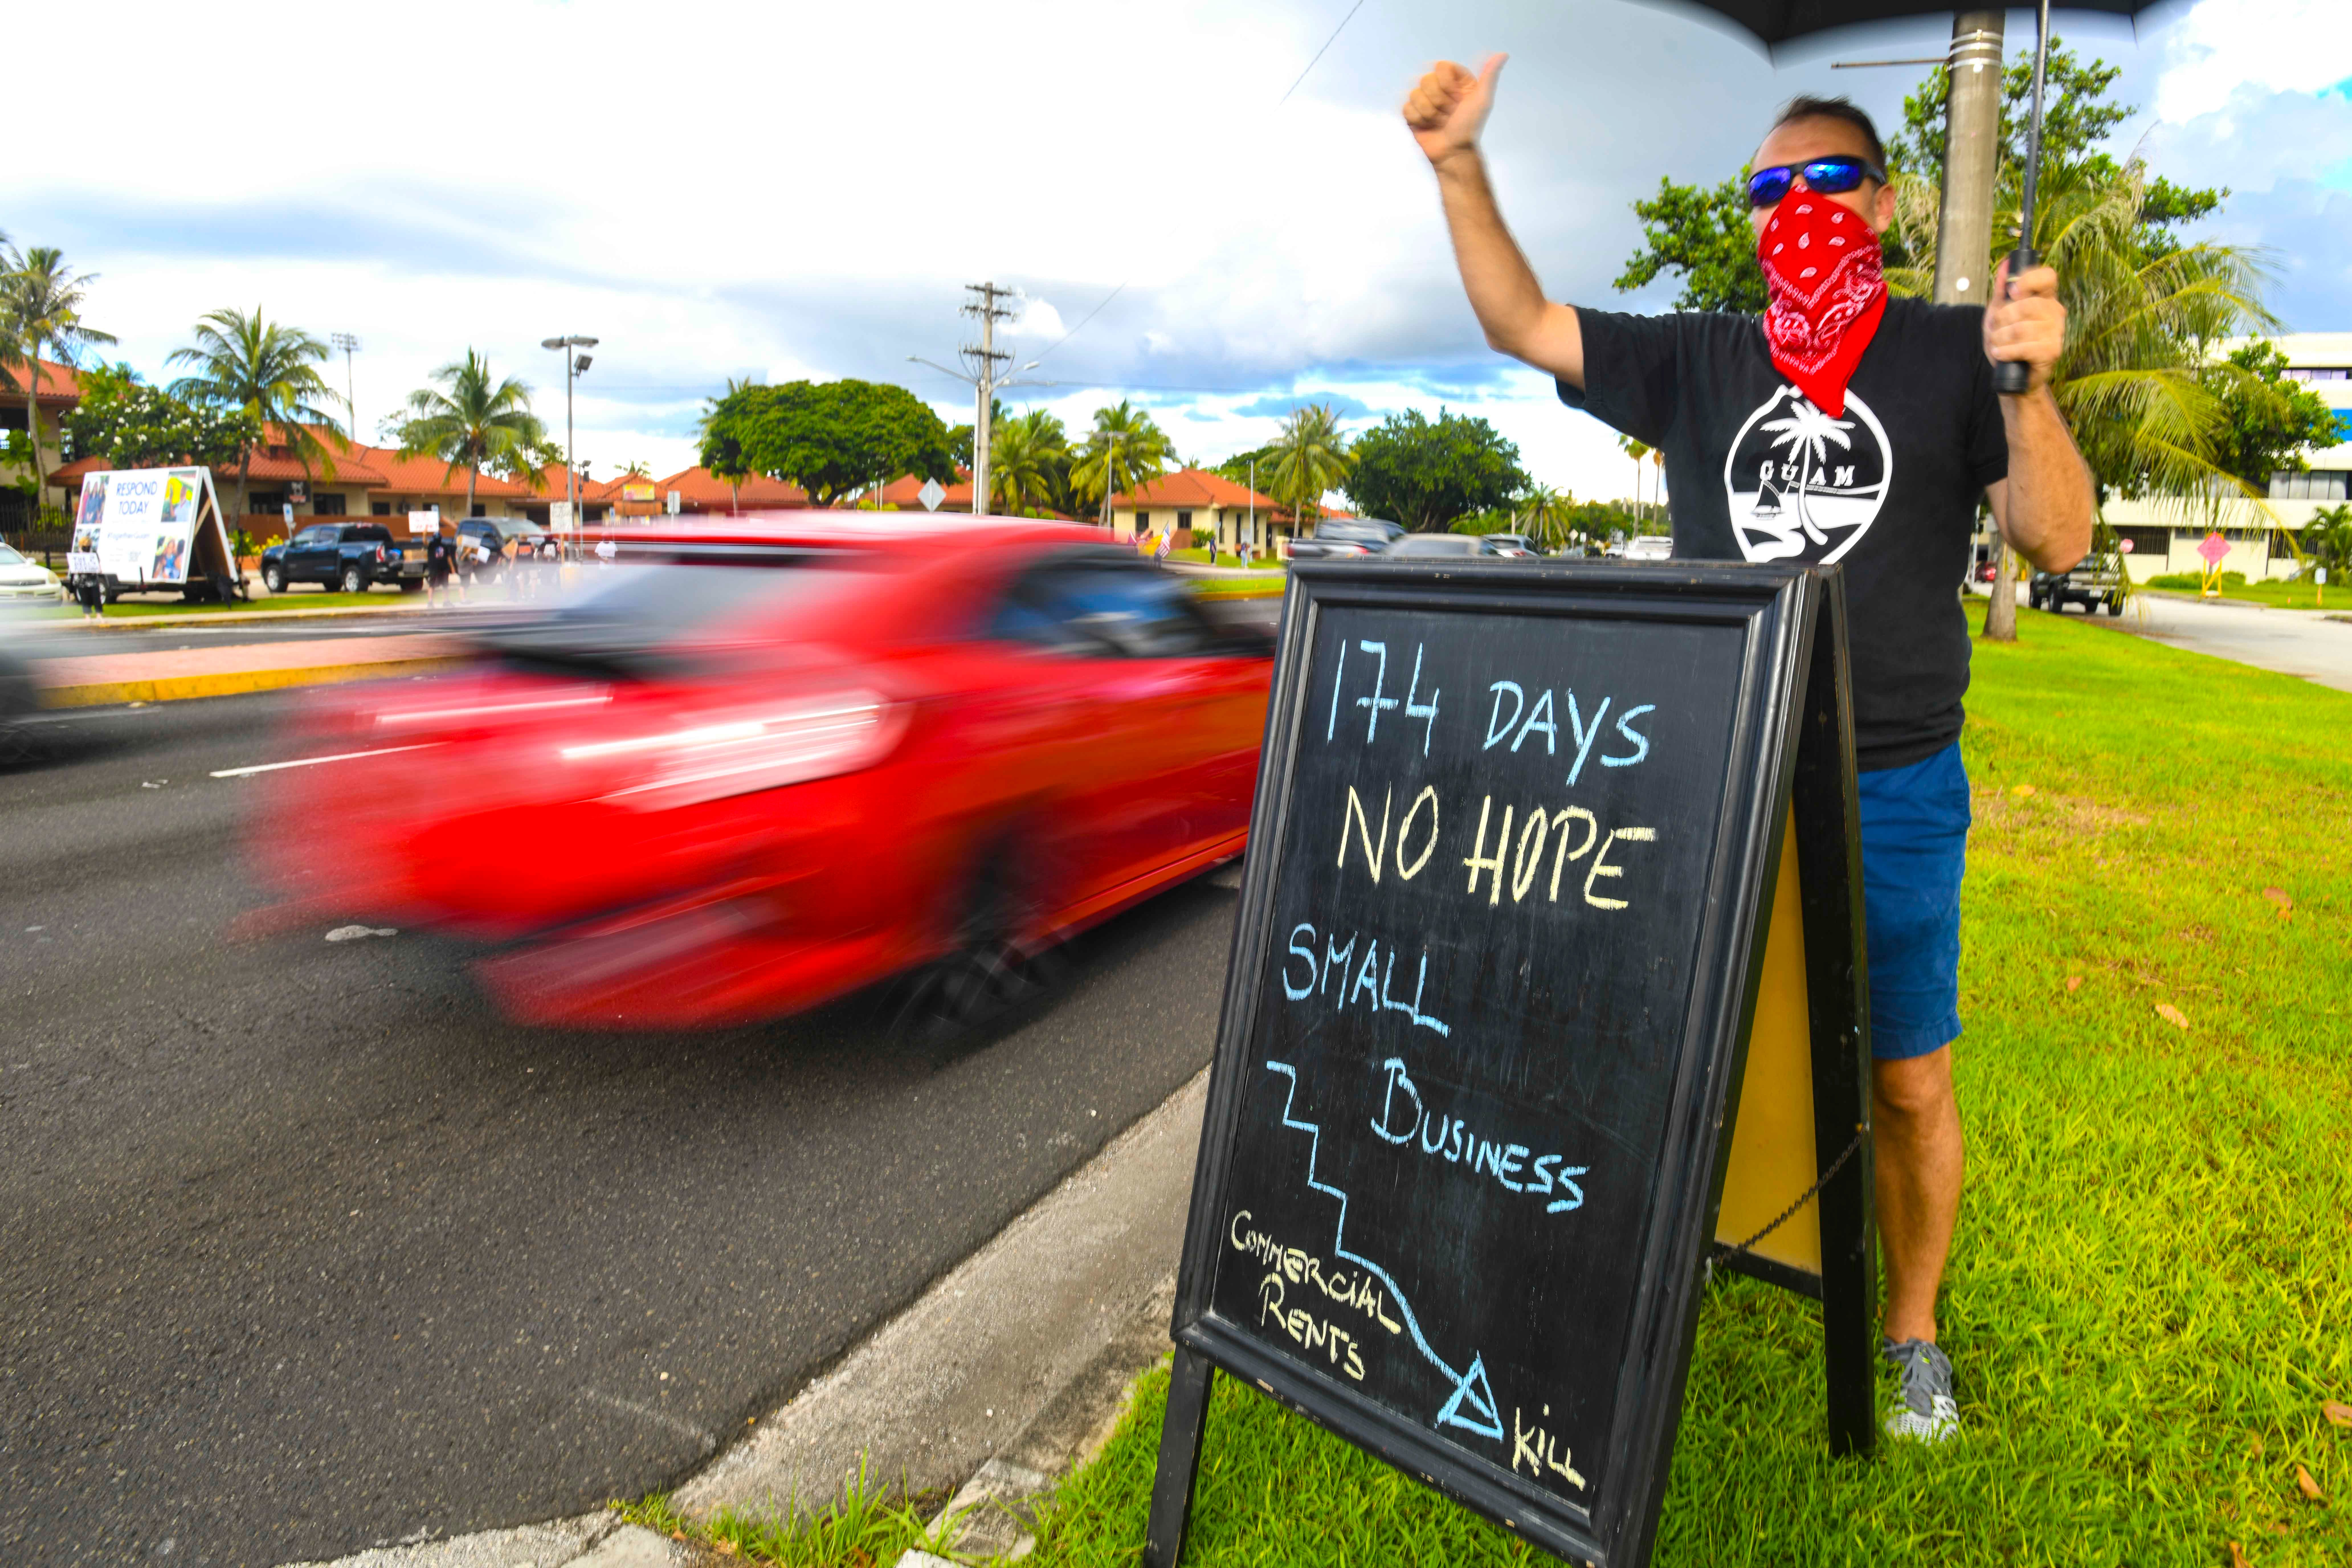 Thomas Peinhopf and other protesters wave during a peaceful protest against pandemic restrictions held along Marine Corps Drive near the CHamoru Village in this Sept. 10, 2020, file photo. According toPeinhopf, neither federal nor local support has been enough to help businesses shuttered because of pandemic restrictions.